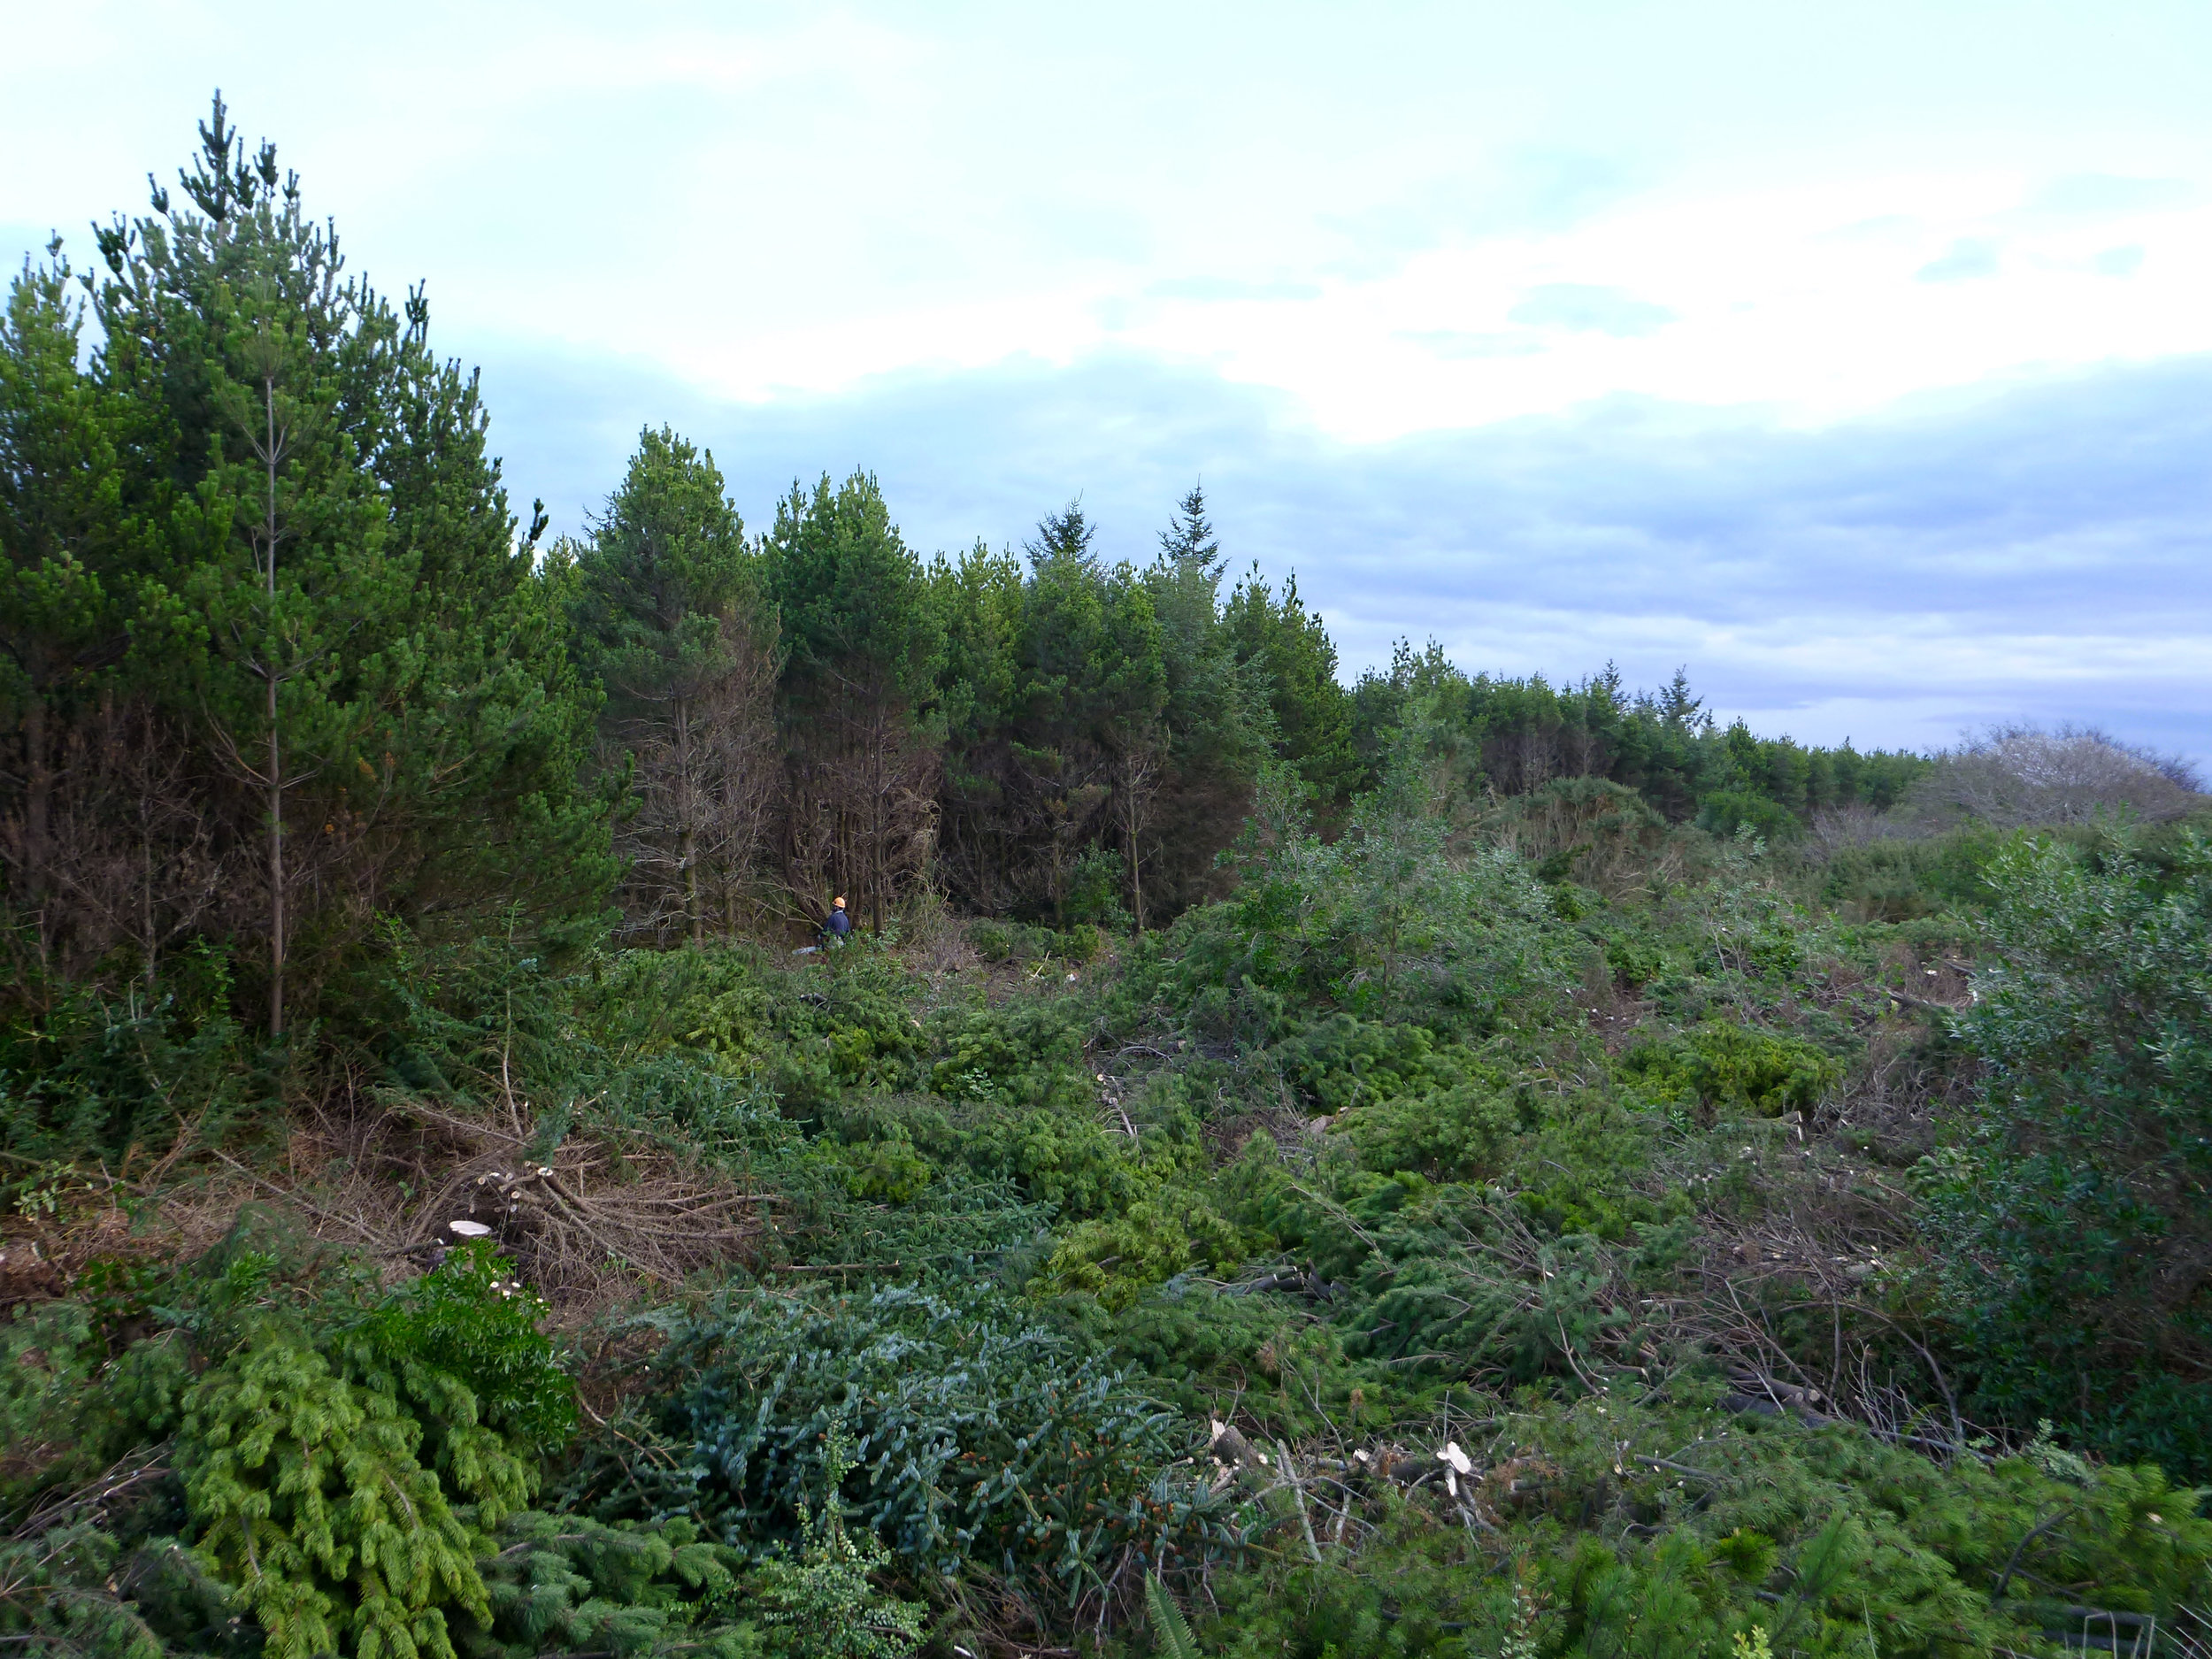 Felled trees at Leadbetter Point at Willapa National Wildlife Refuge